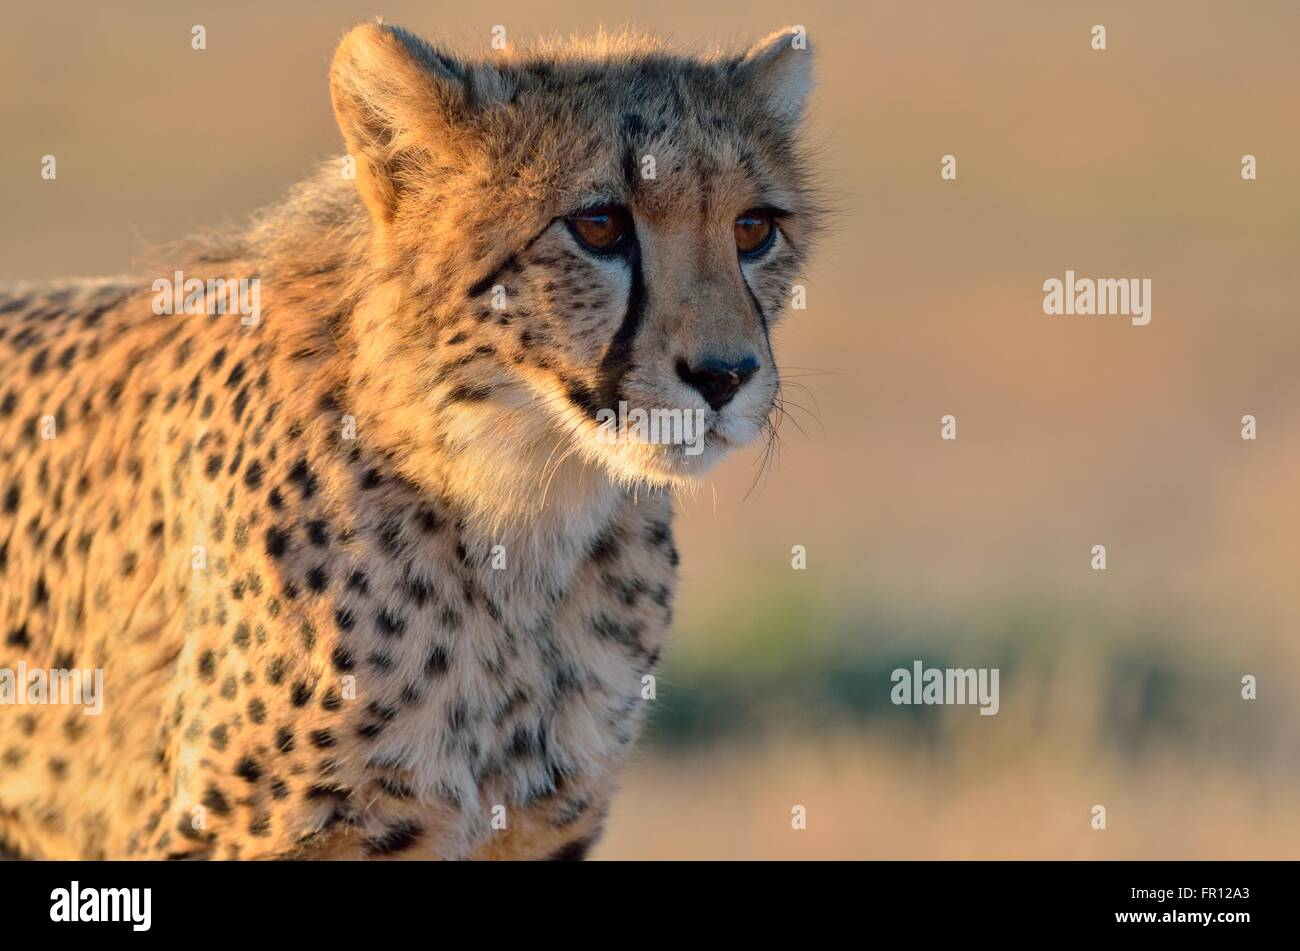 Young cheetah (Acinonyx jubatus), alert, in the evening light, Kgalagadi Transfrontier Park, Northern Cape, South - Stock Image